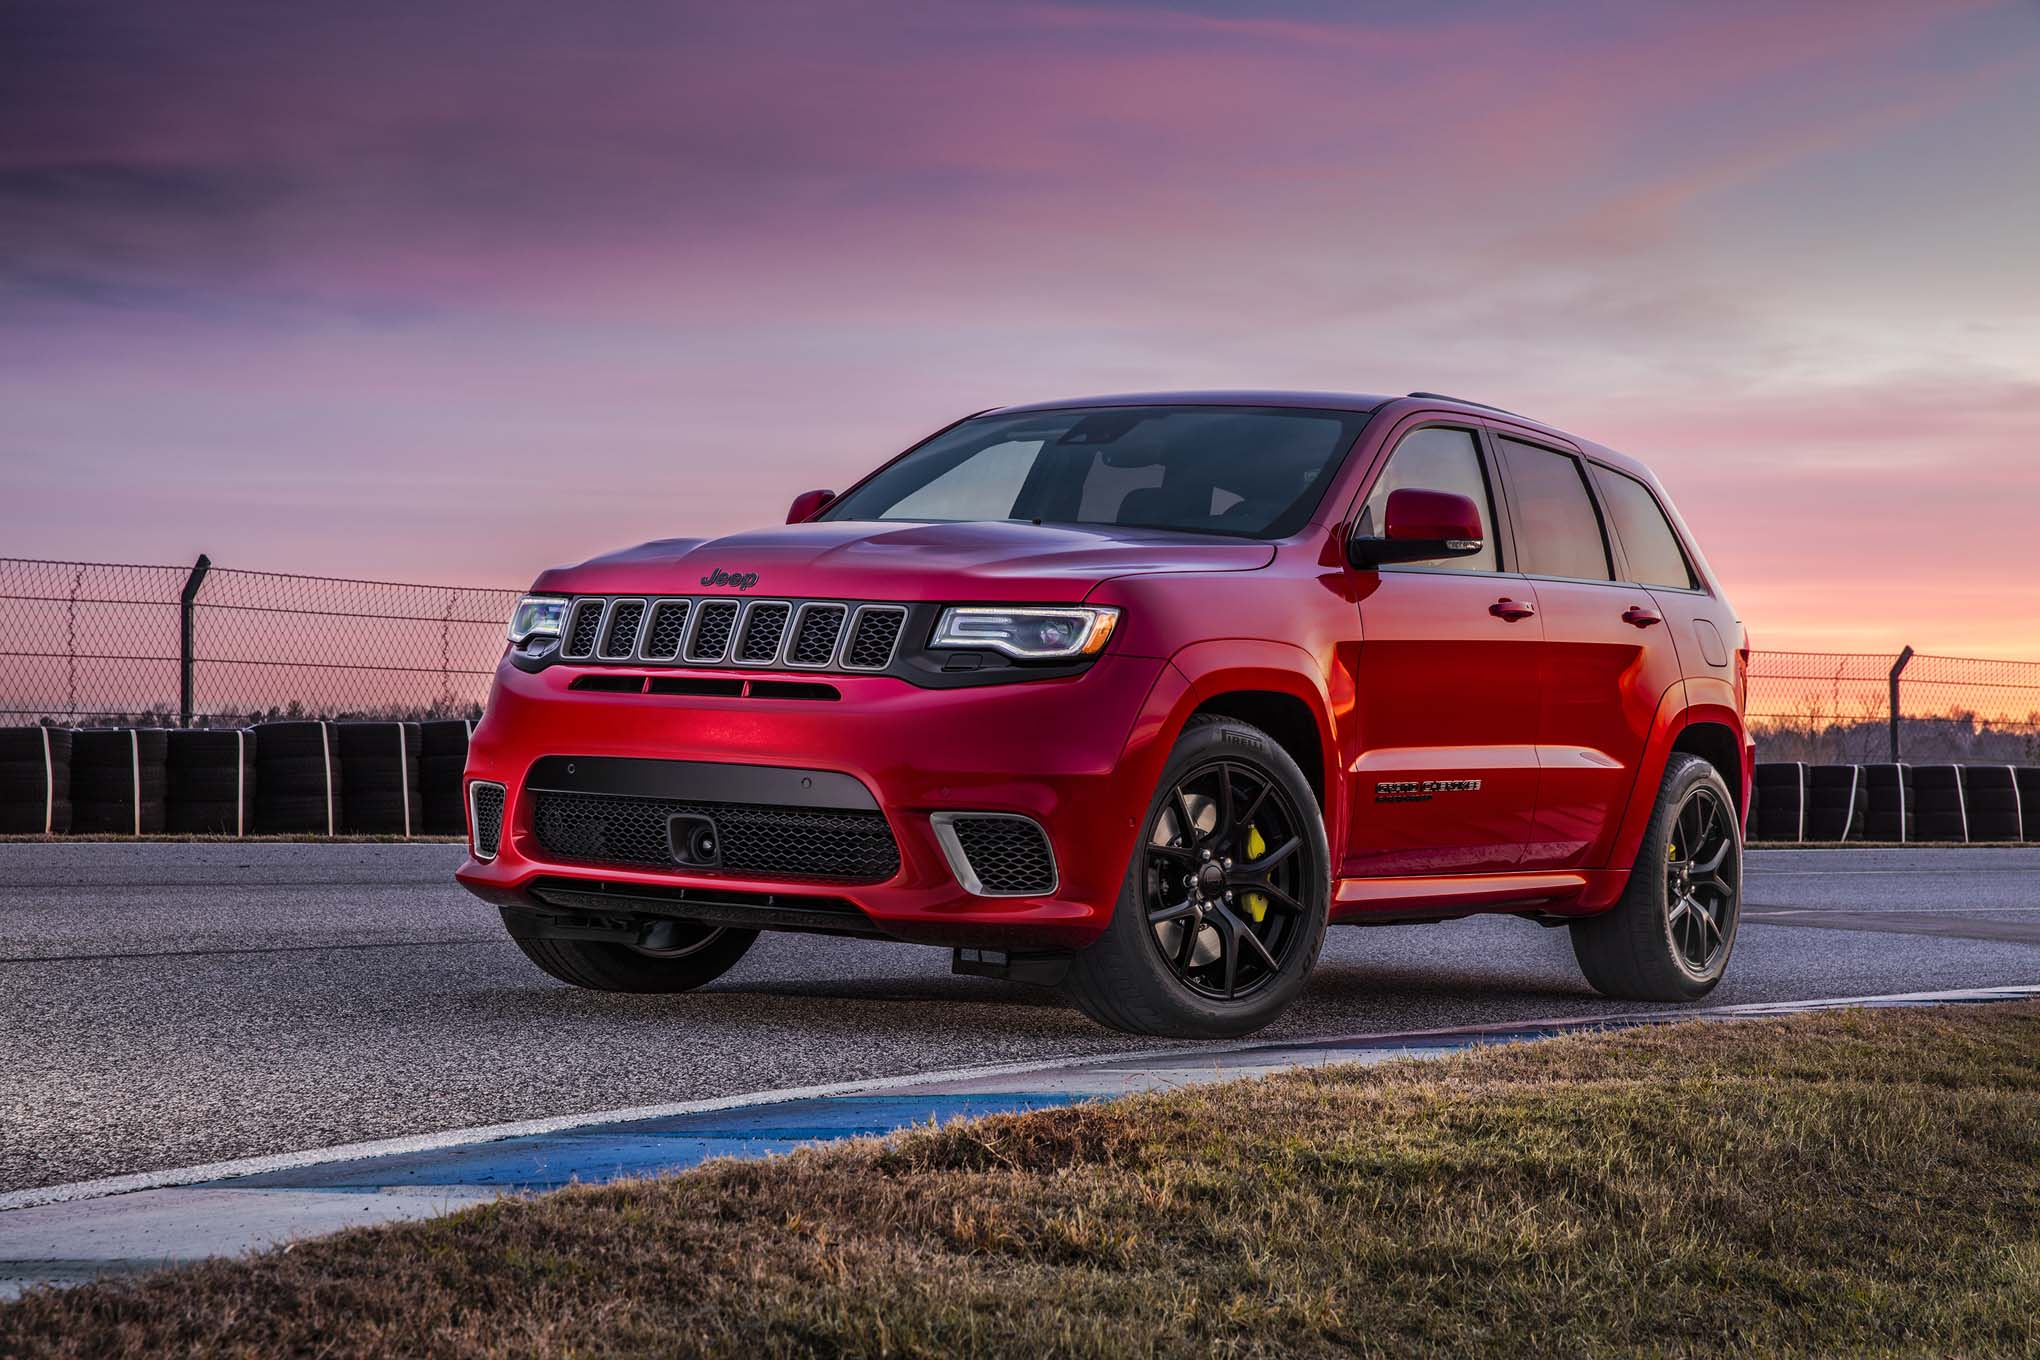 Track Hawk Grand Cherokee >> The 2018 Jeep Grand Cherokee Trackhawk Costs Almost $90K » AutoGuide.com News